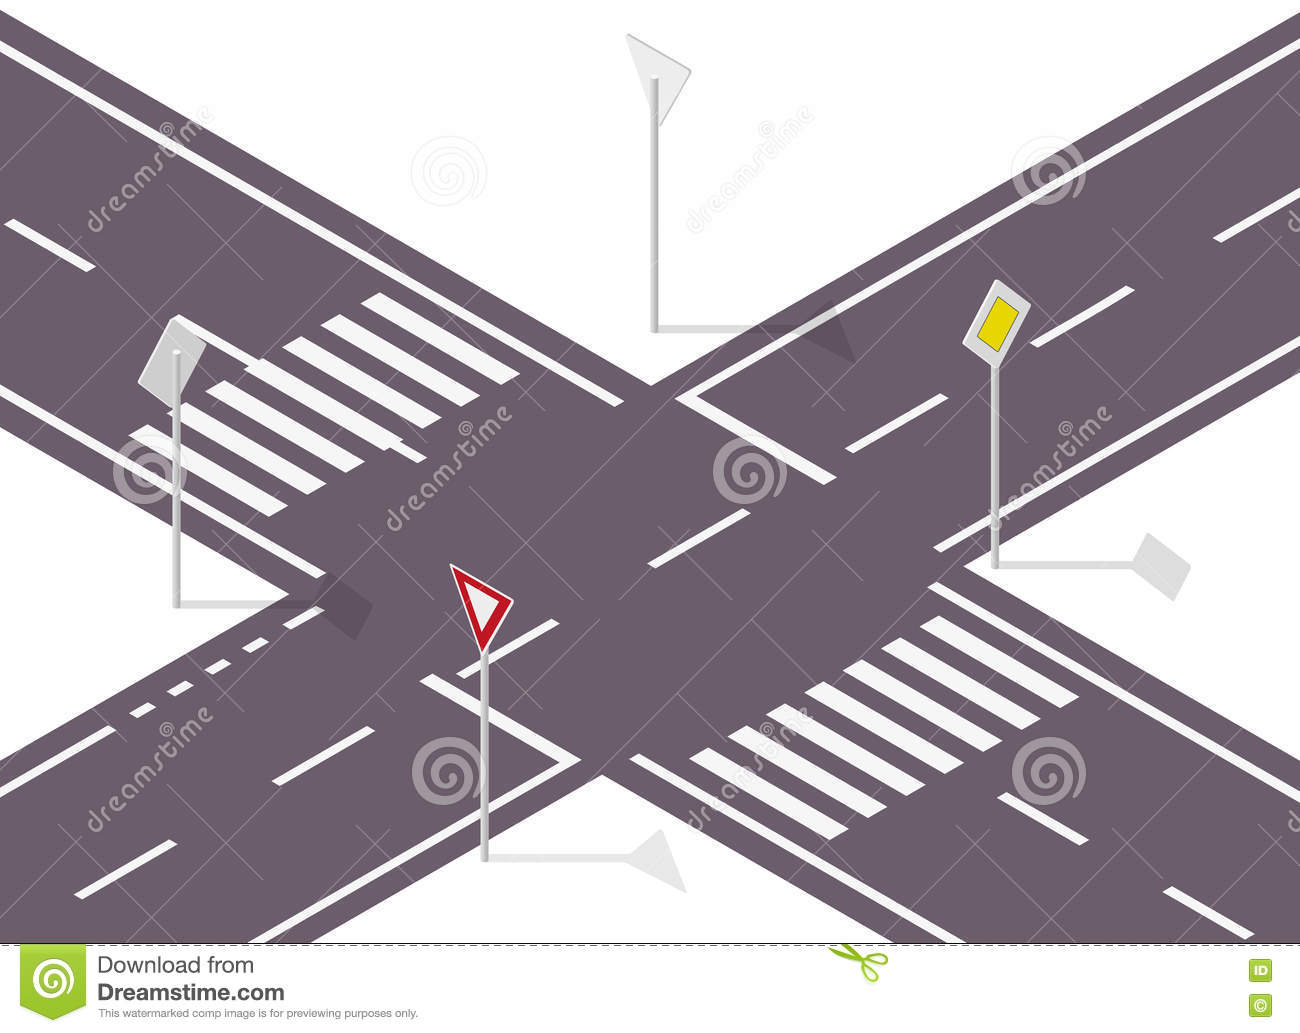 Road Sign On Street. Street Traffic Sign. Info Graphic Crossway. Stock Vector